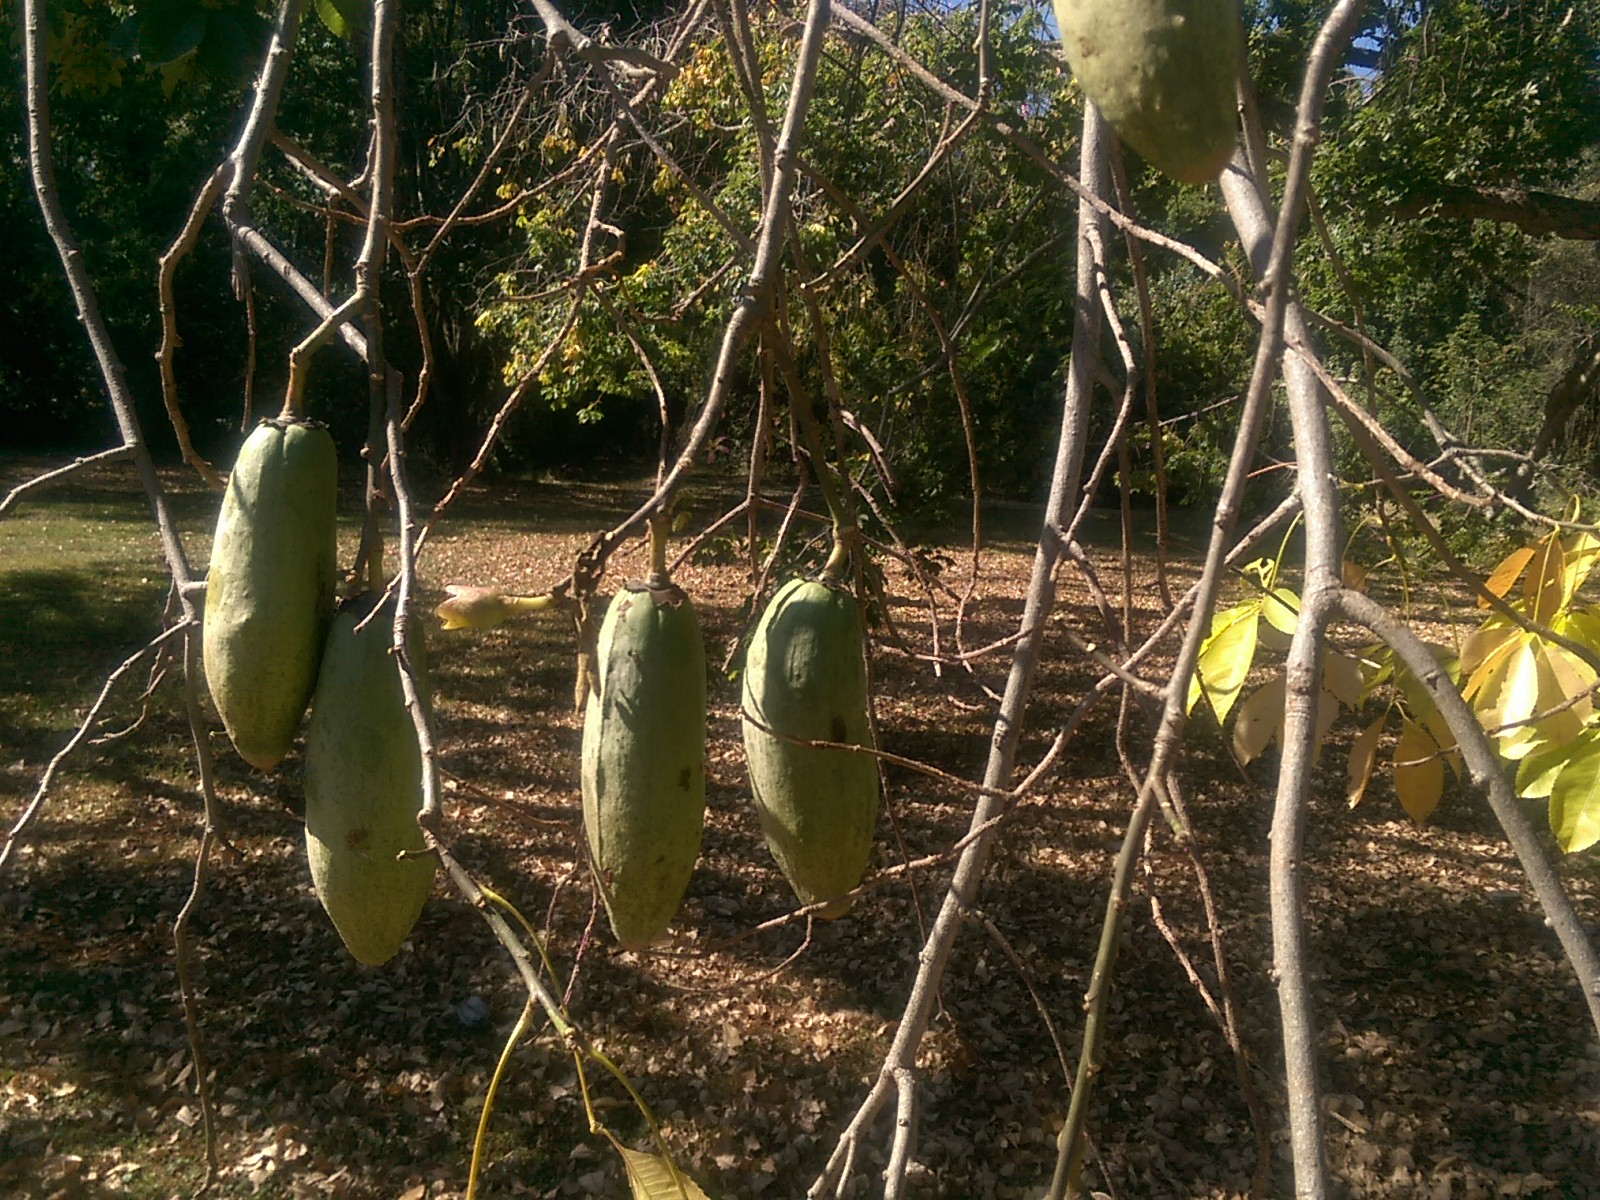 Tree branches supporting large green hanging pods